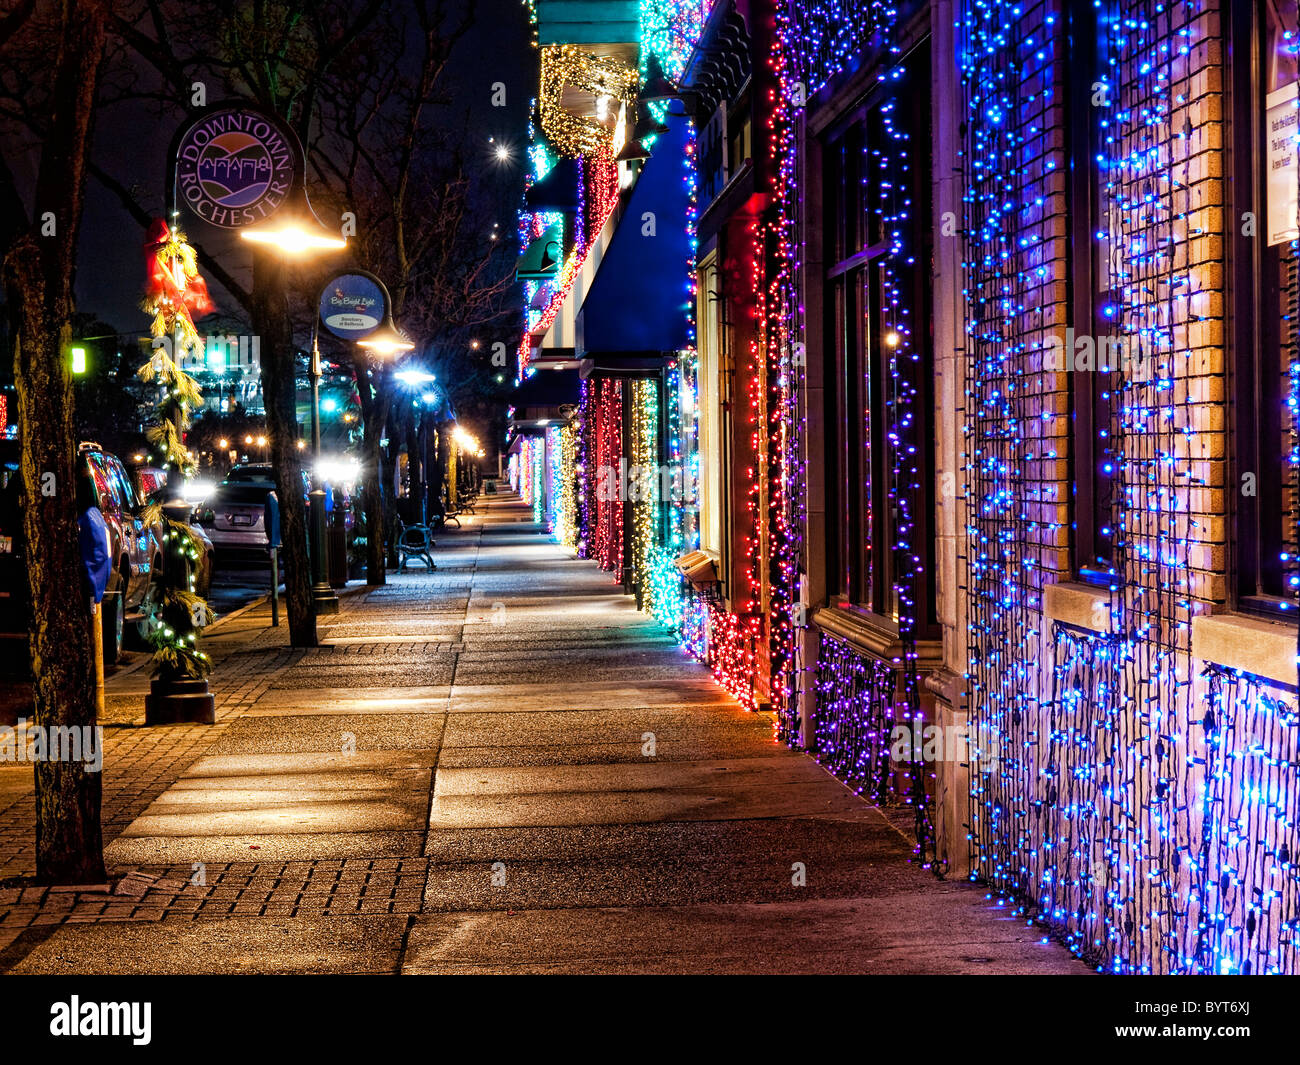 Christmas Lights Line The Main Street In Rochester Michigan   Stock Image